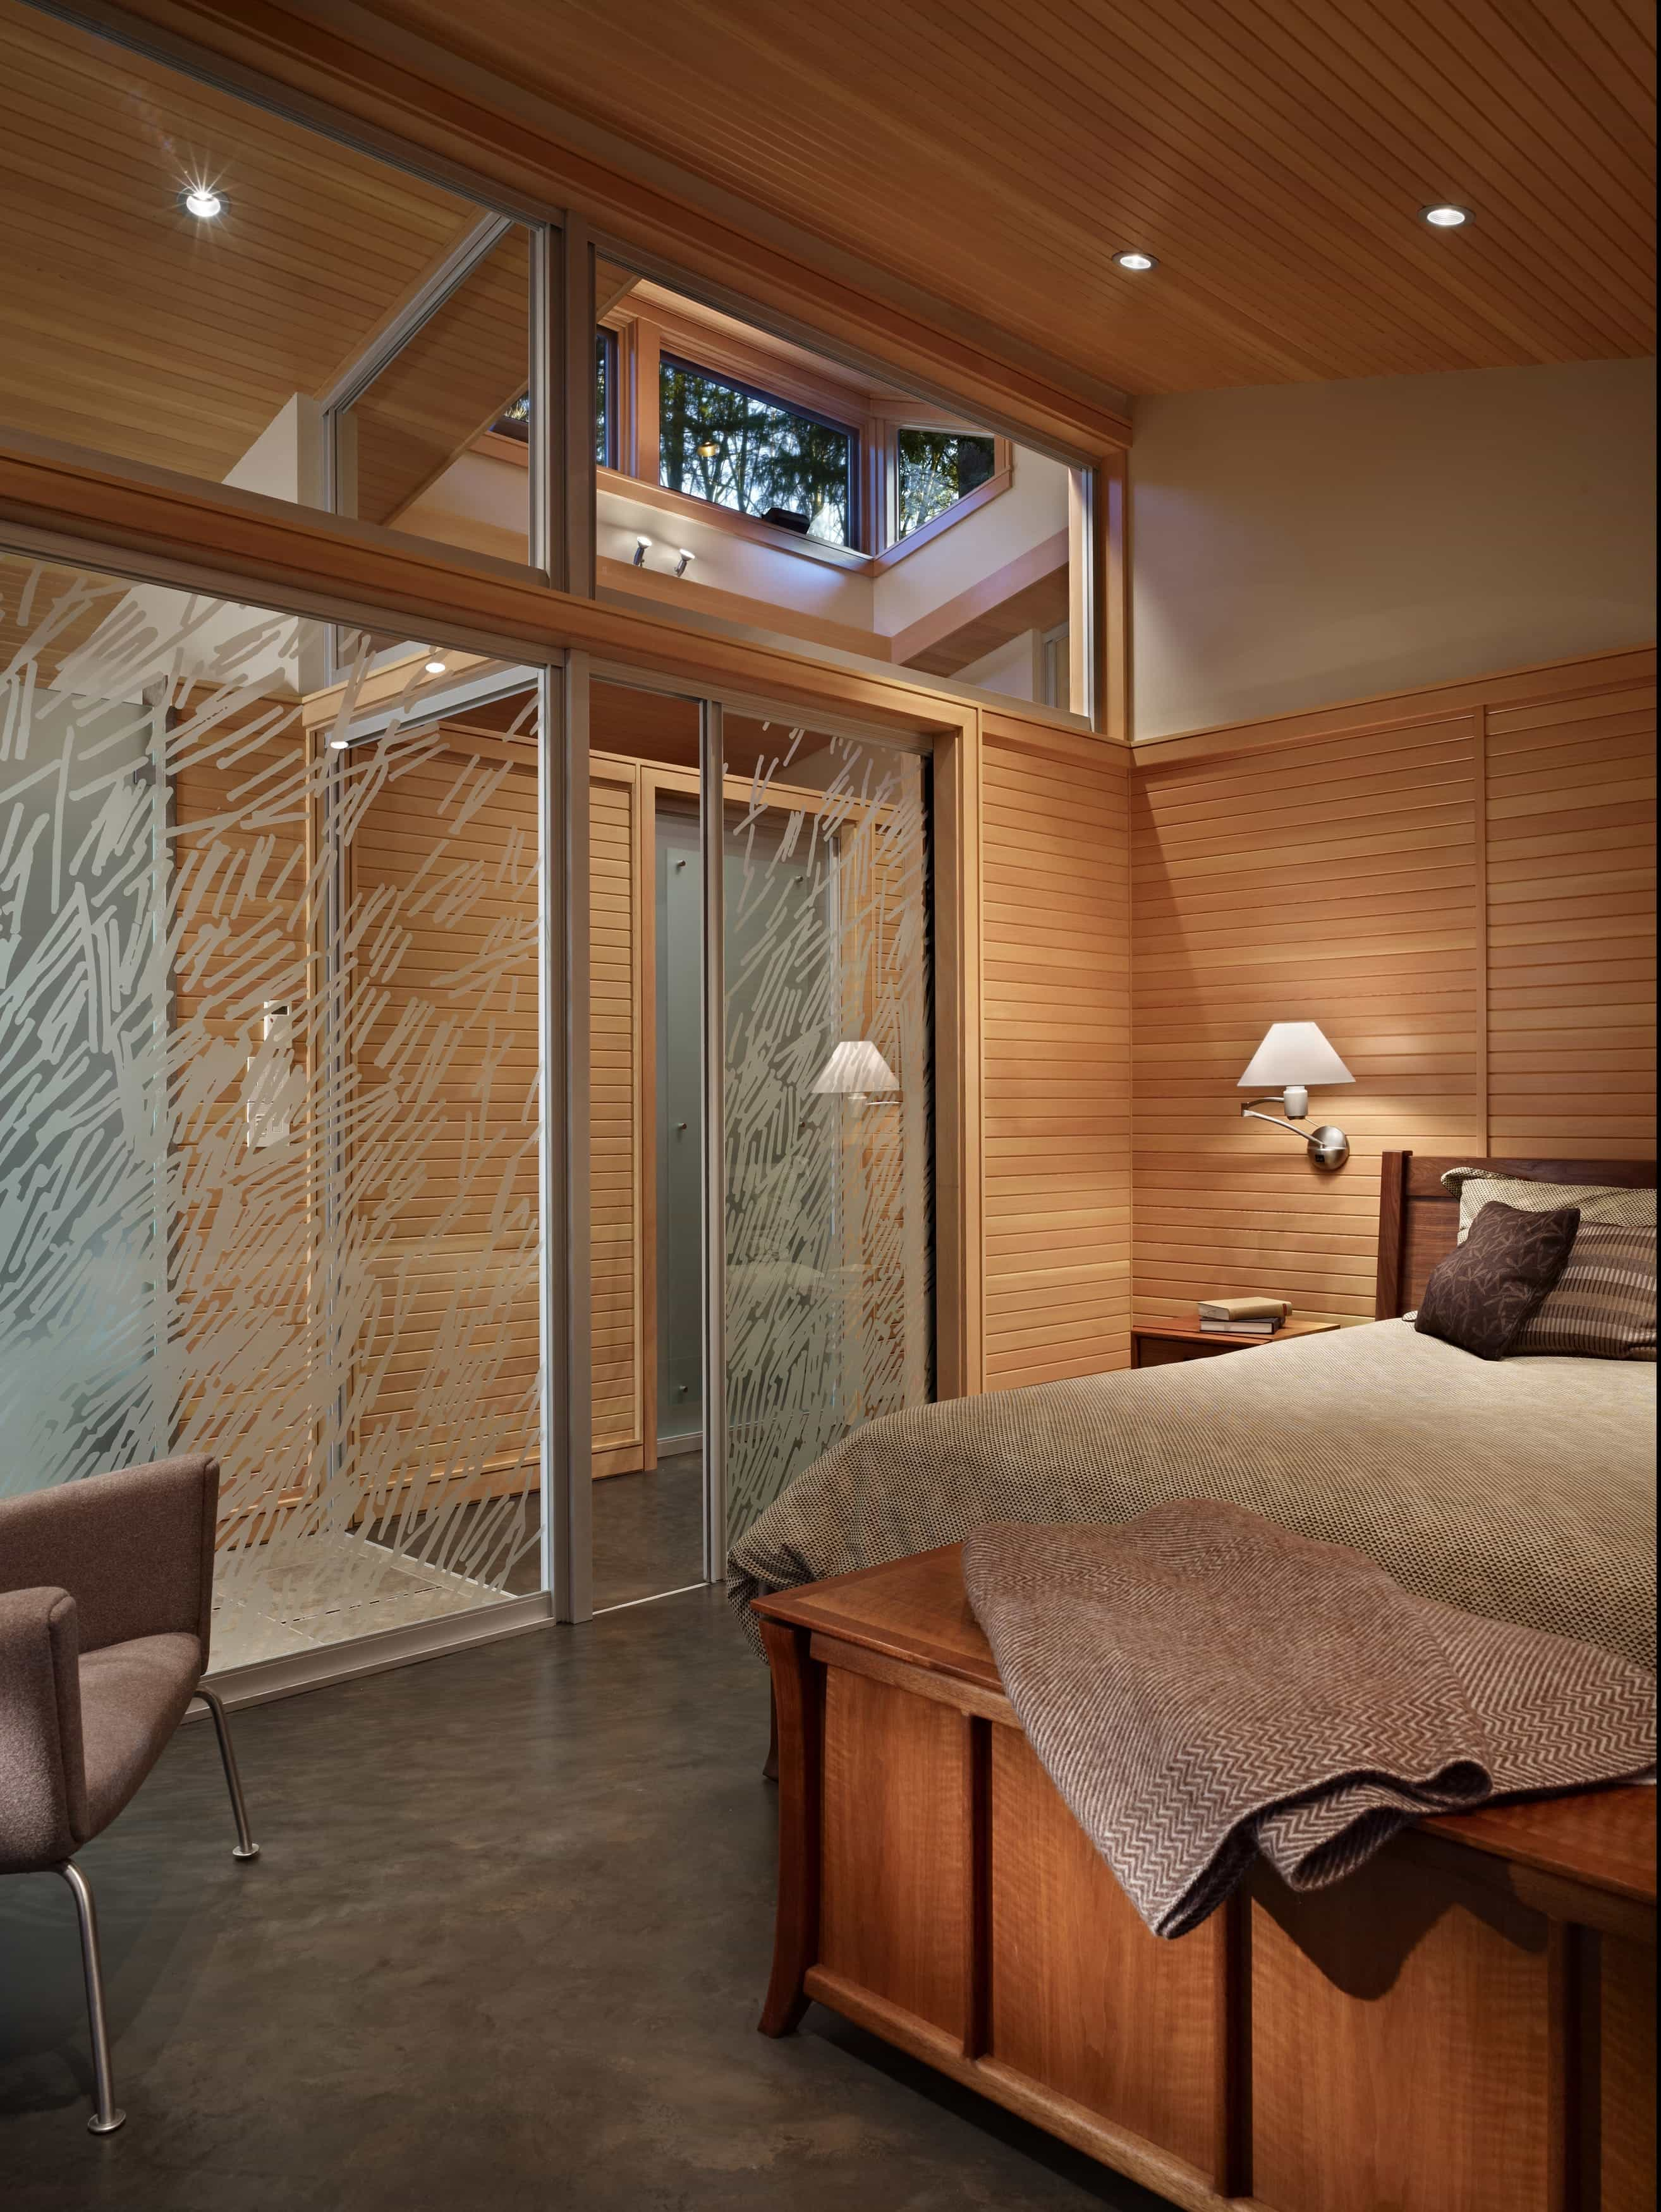 Contemporary Bedroom With Textured Sliding Glass Door (Image 6 of 27)